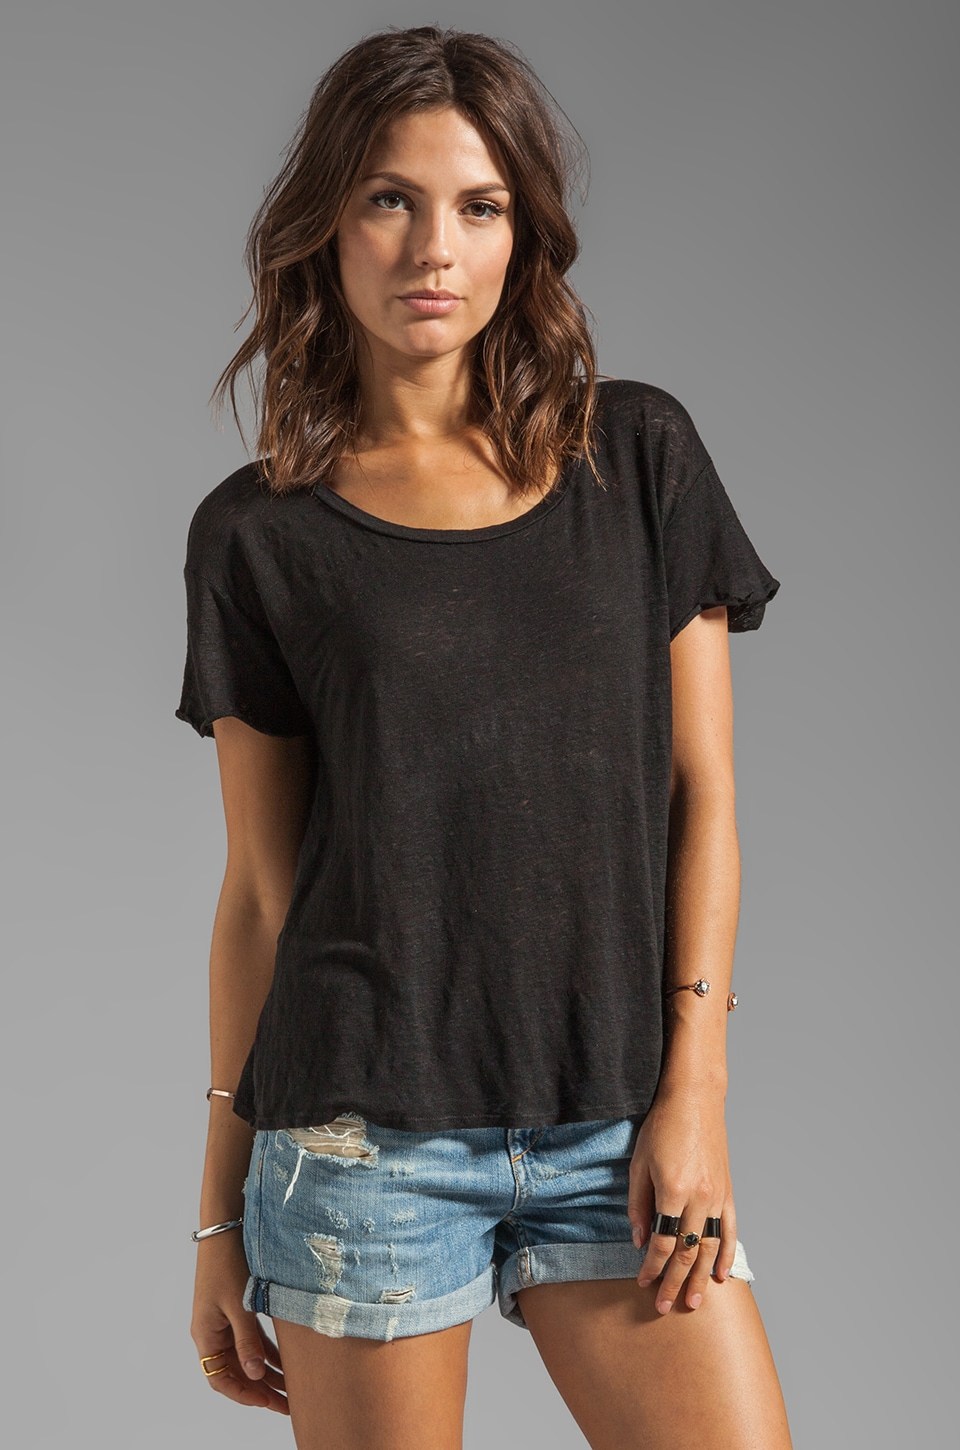 Graham & Spencer Linen Knit Tee in Black